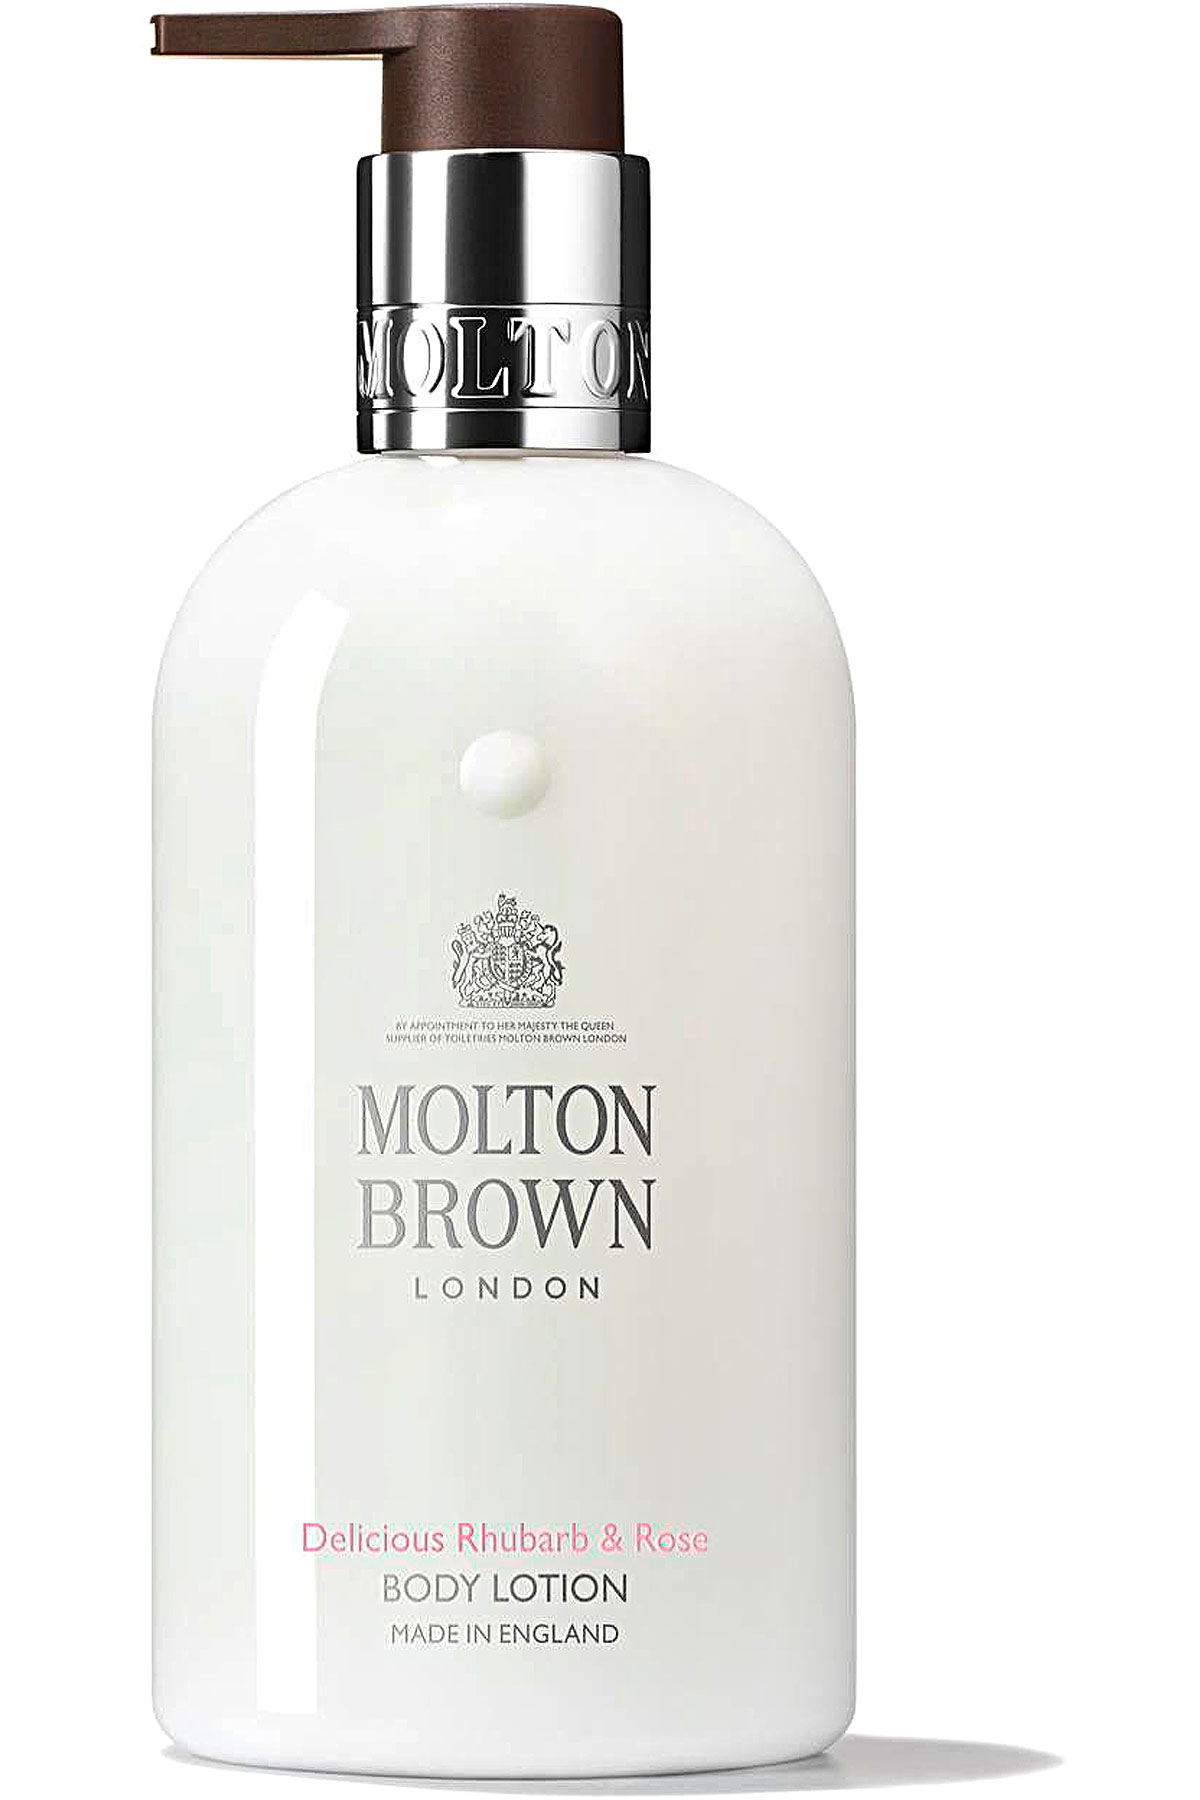 Molton Brown Beauty for Women, Delicious Rhubarb & Rose - Body Lotion - 300 Ml, 2019, 300 ml